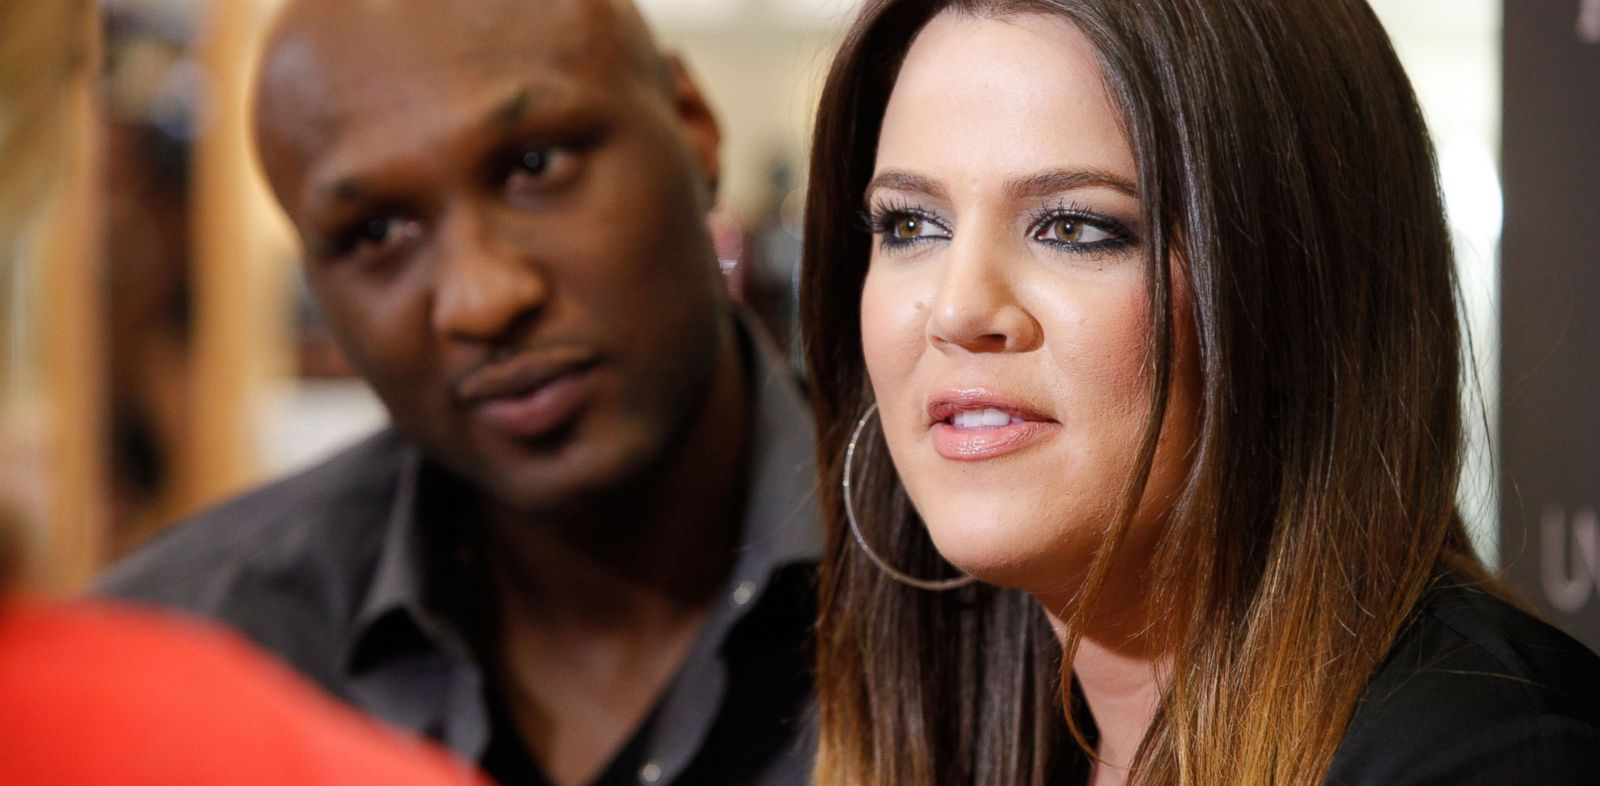 PHOTO: In this file photo, Lamar Odom, left, and Khloe Kardashian, right, make an appearance on Jun. 7, 2012 in Orange, Calif.